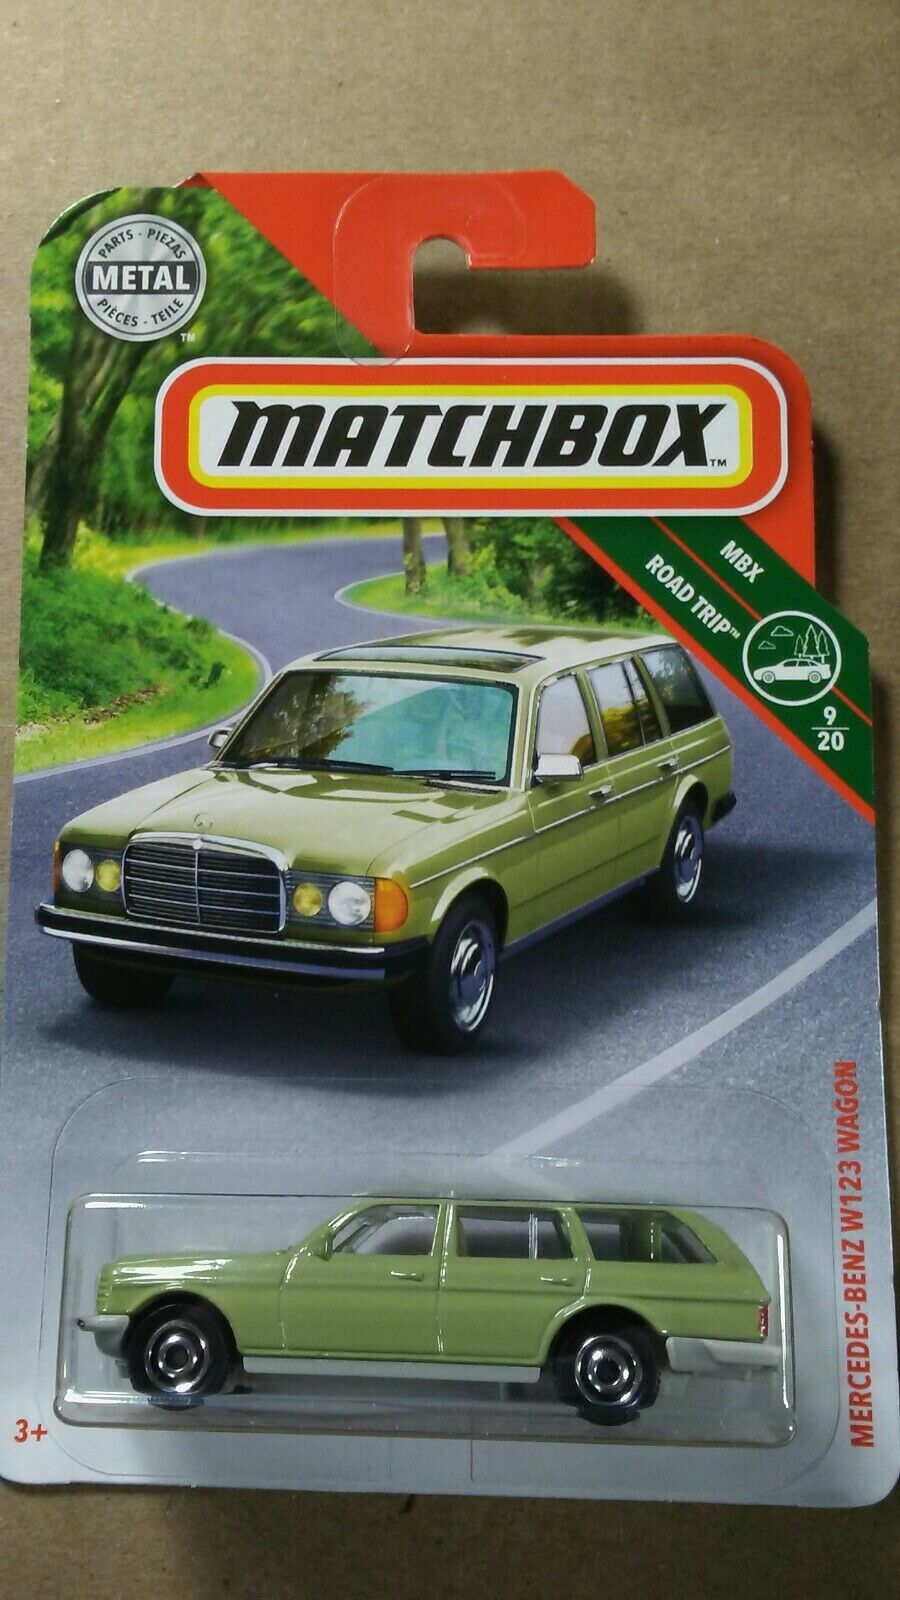 Matchbox mercedes benz w123 wagon mbx road trip 2019 p case